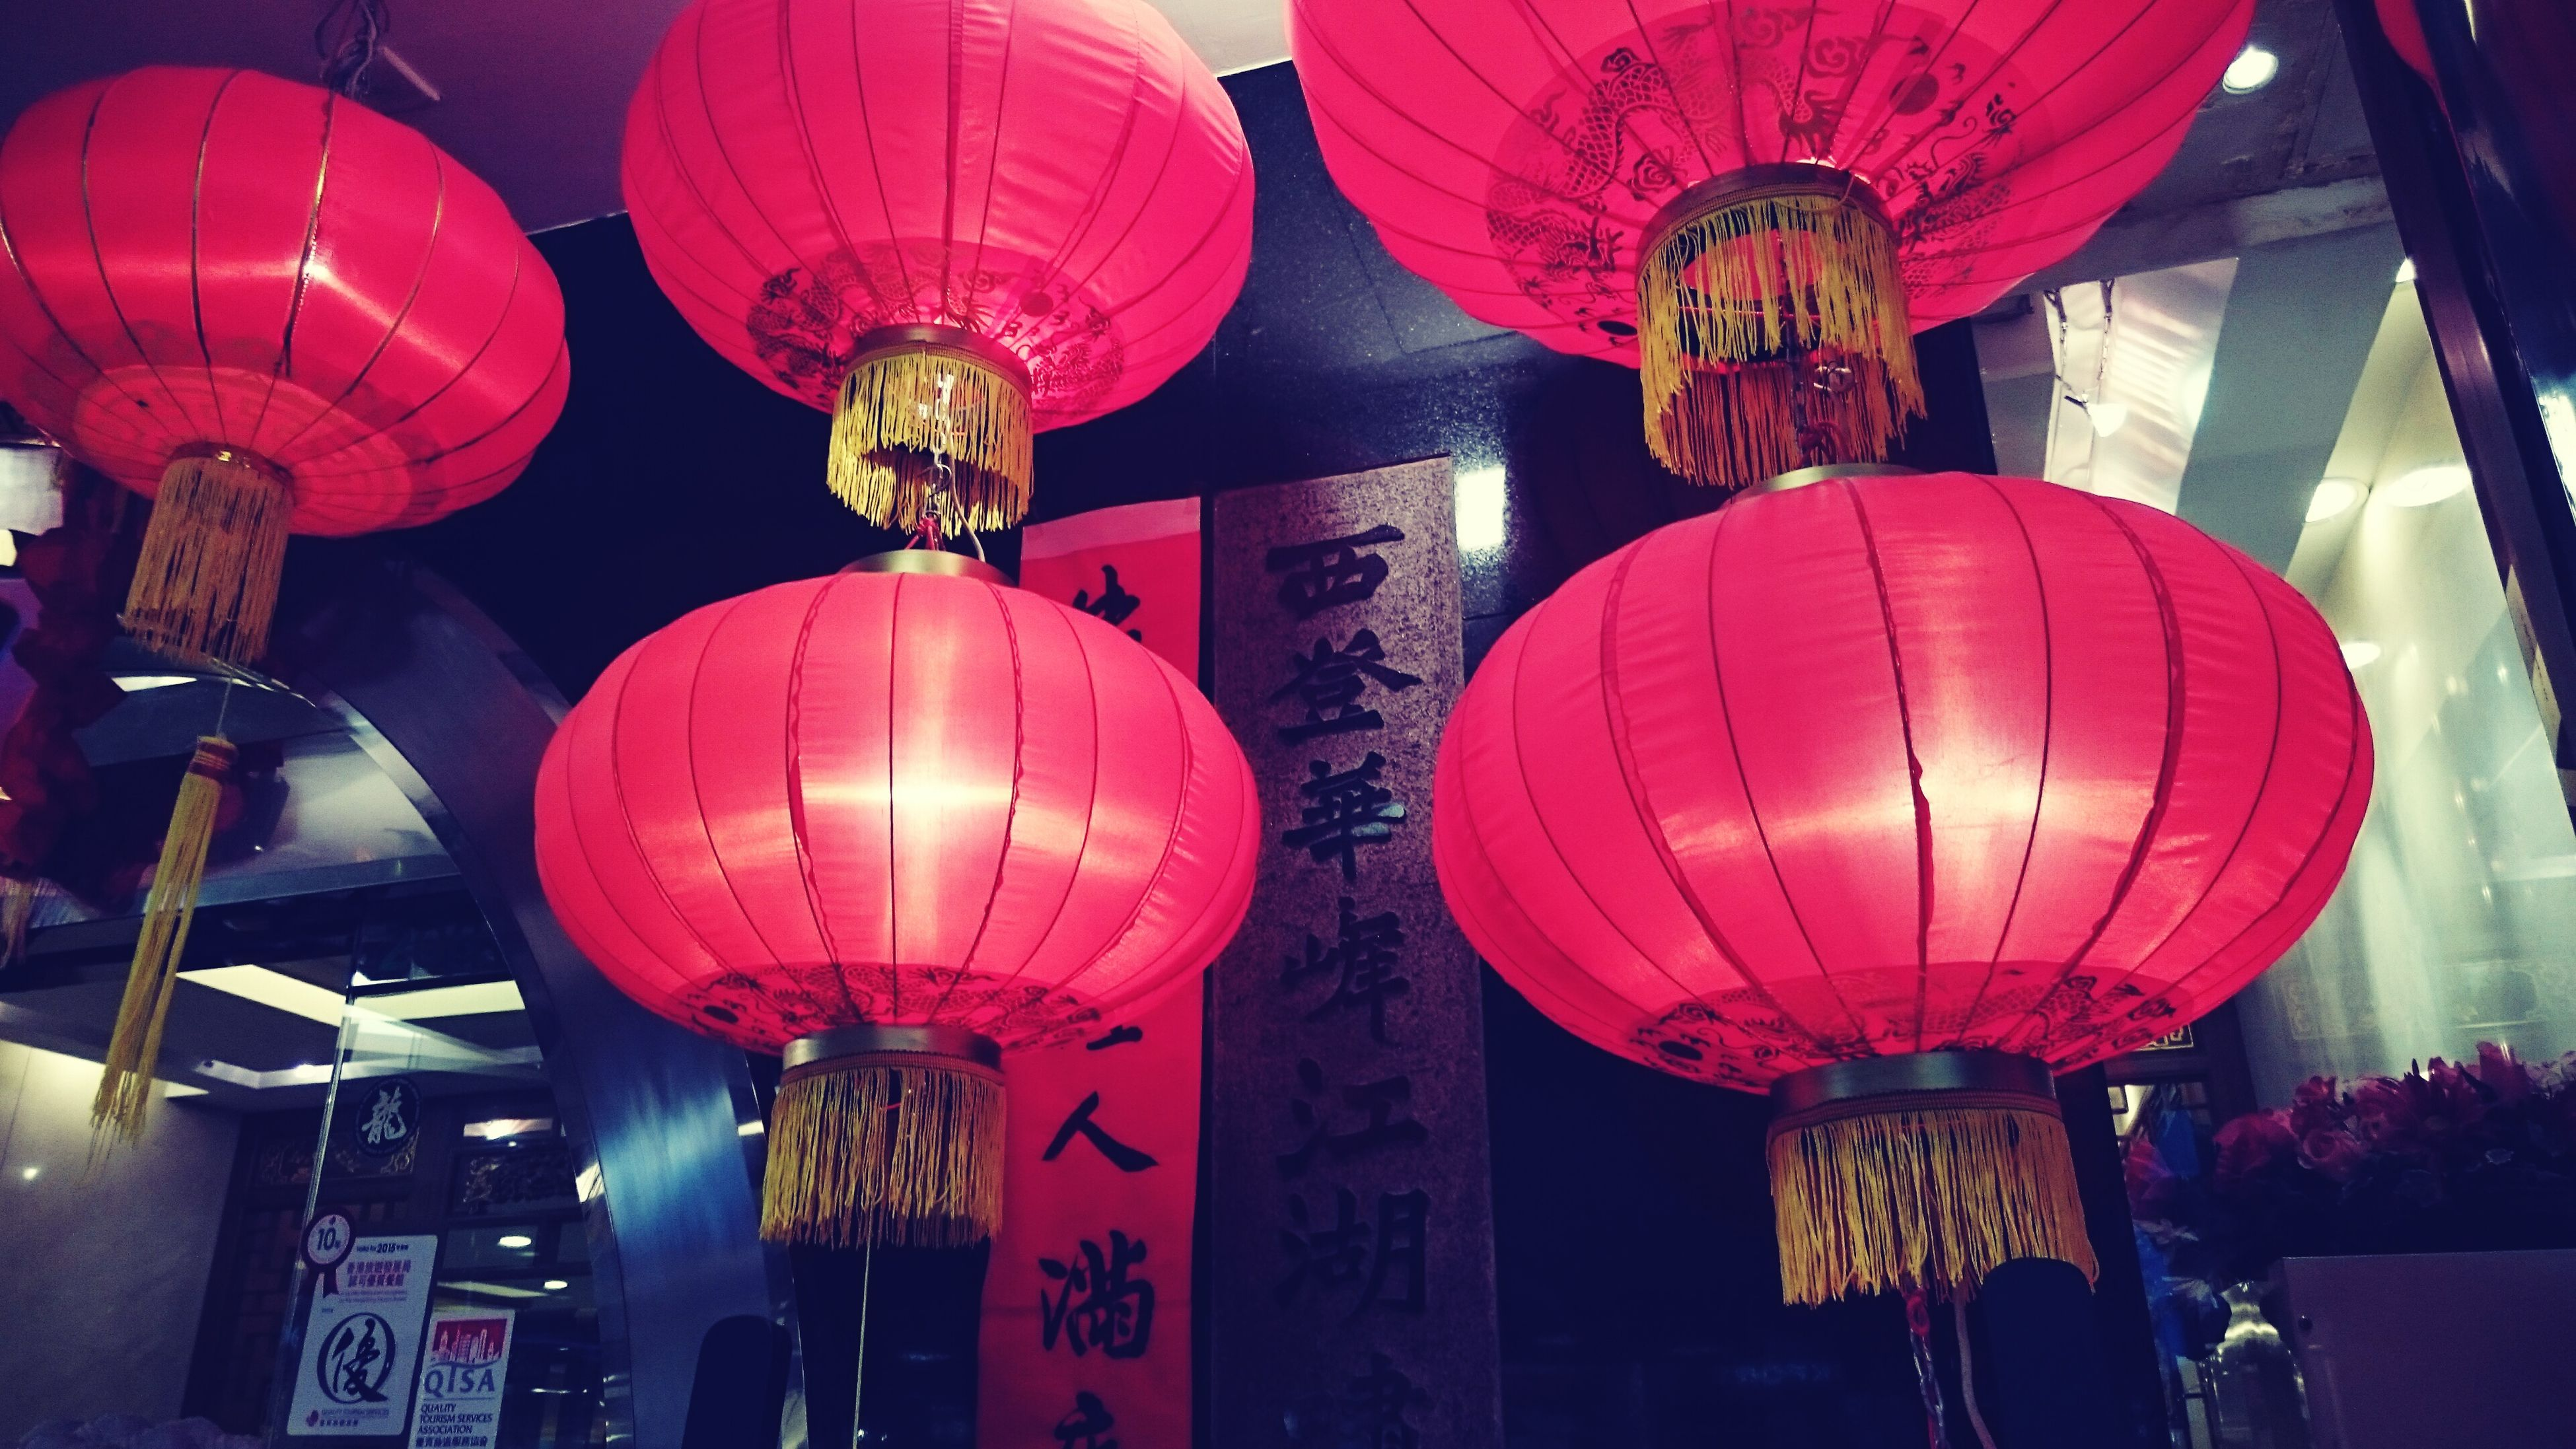 hanging, illuminated, lighting equipment, lantern, decoration, chinese lantern, low angle view, celebration, cultures, tradition, indoors, night, red, traditional festival, electric lamp, ceiling, electricity, electric light, culture, in a row